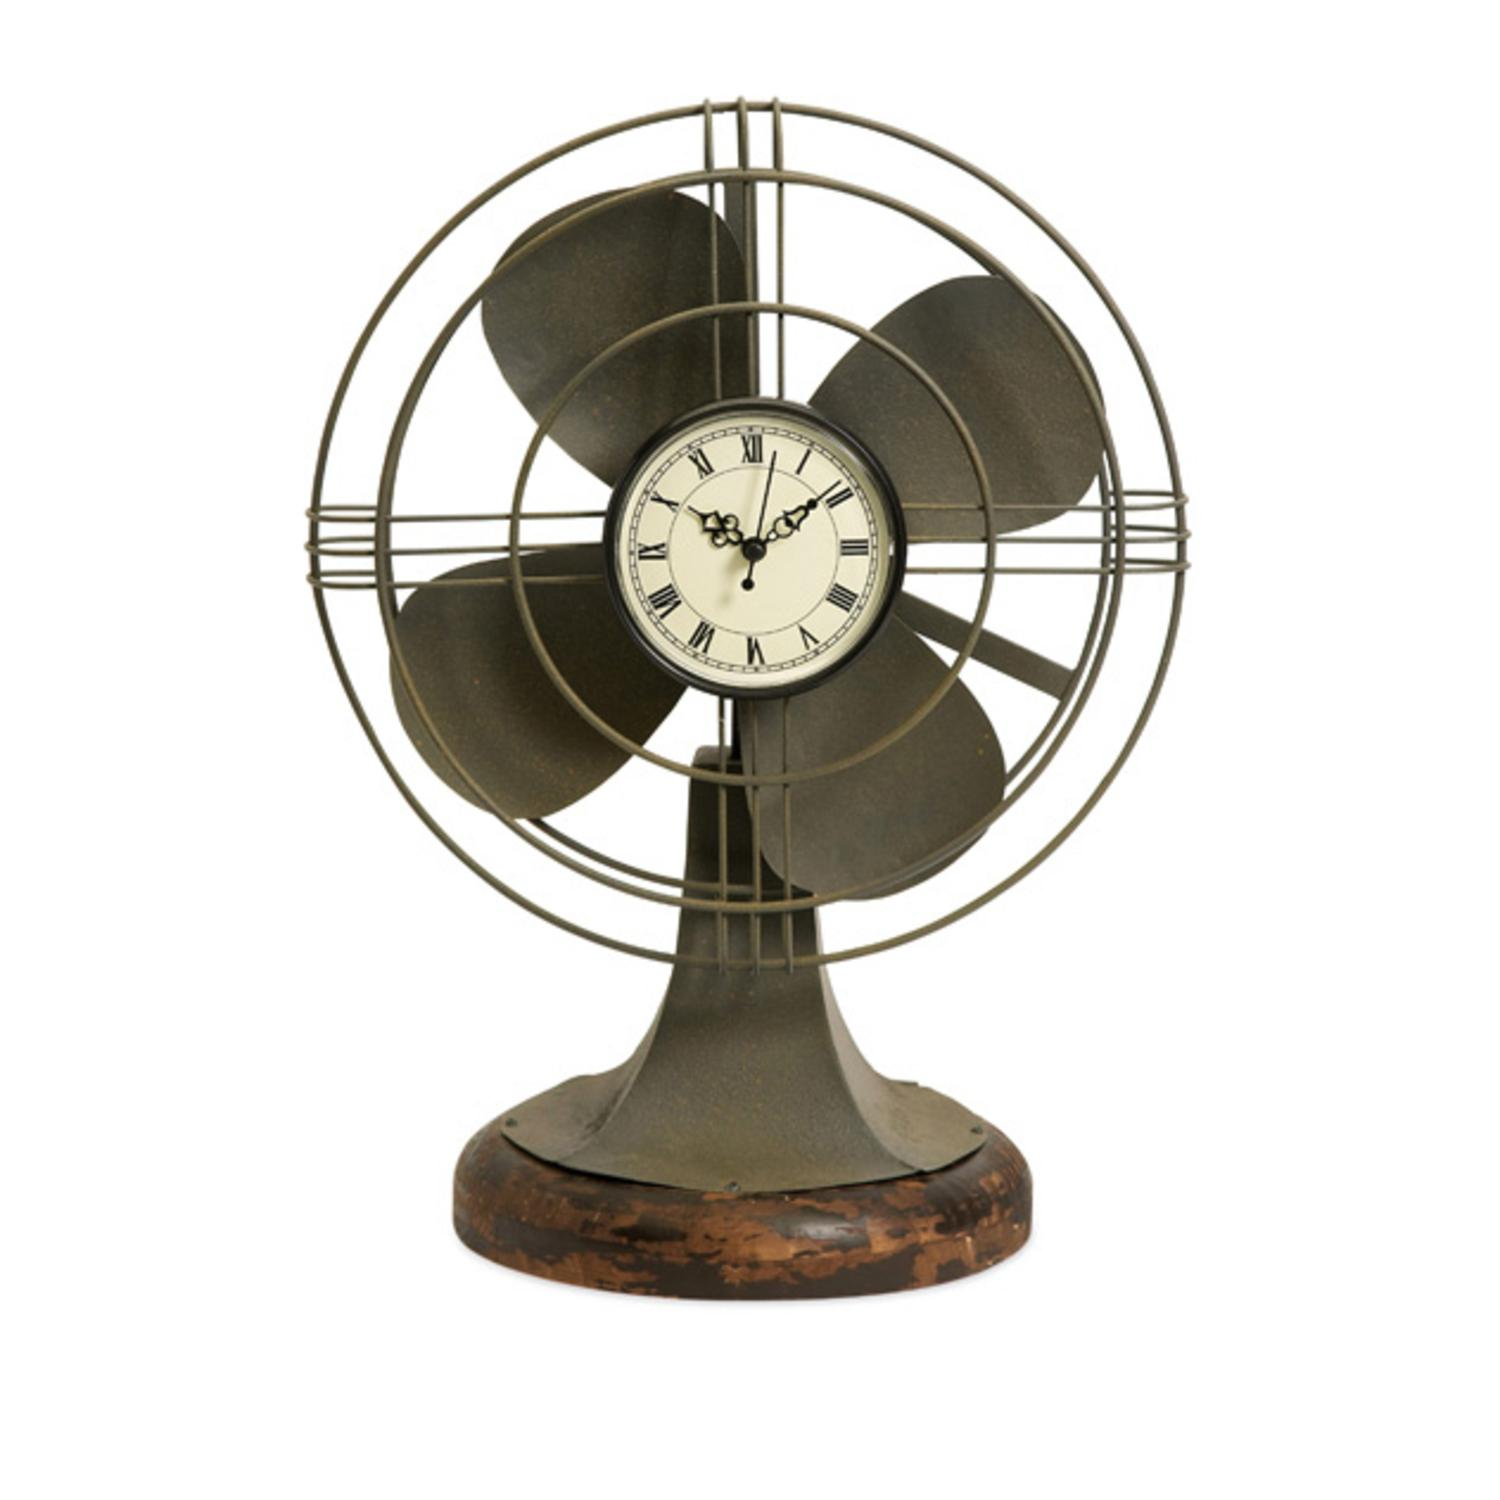 "17.5"" Decorative Retro-Style Table Fan with Clock Face and Wood Base"